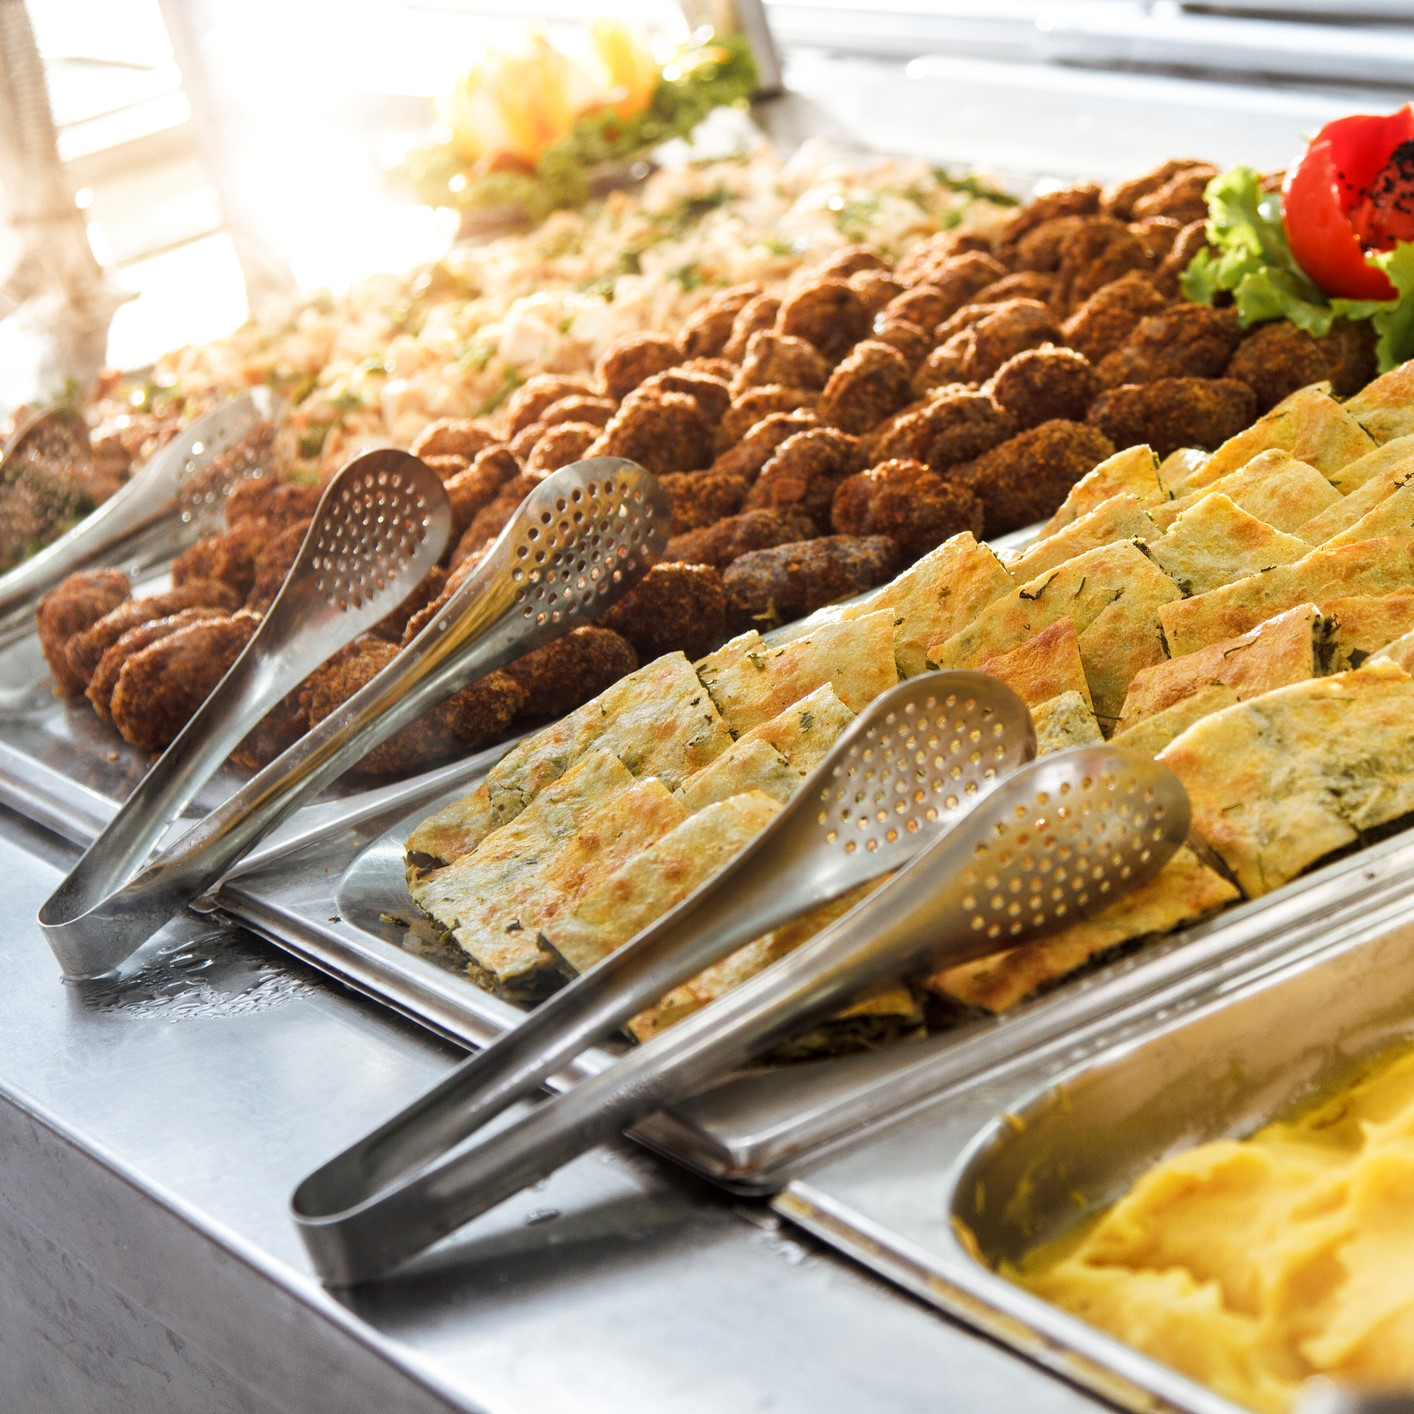 Table of buffet food